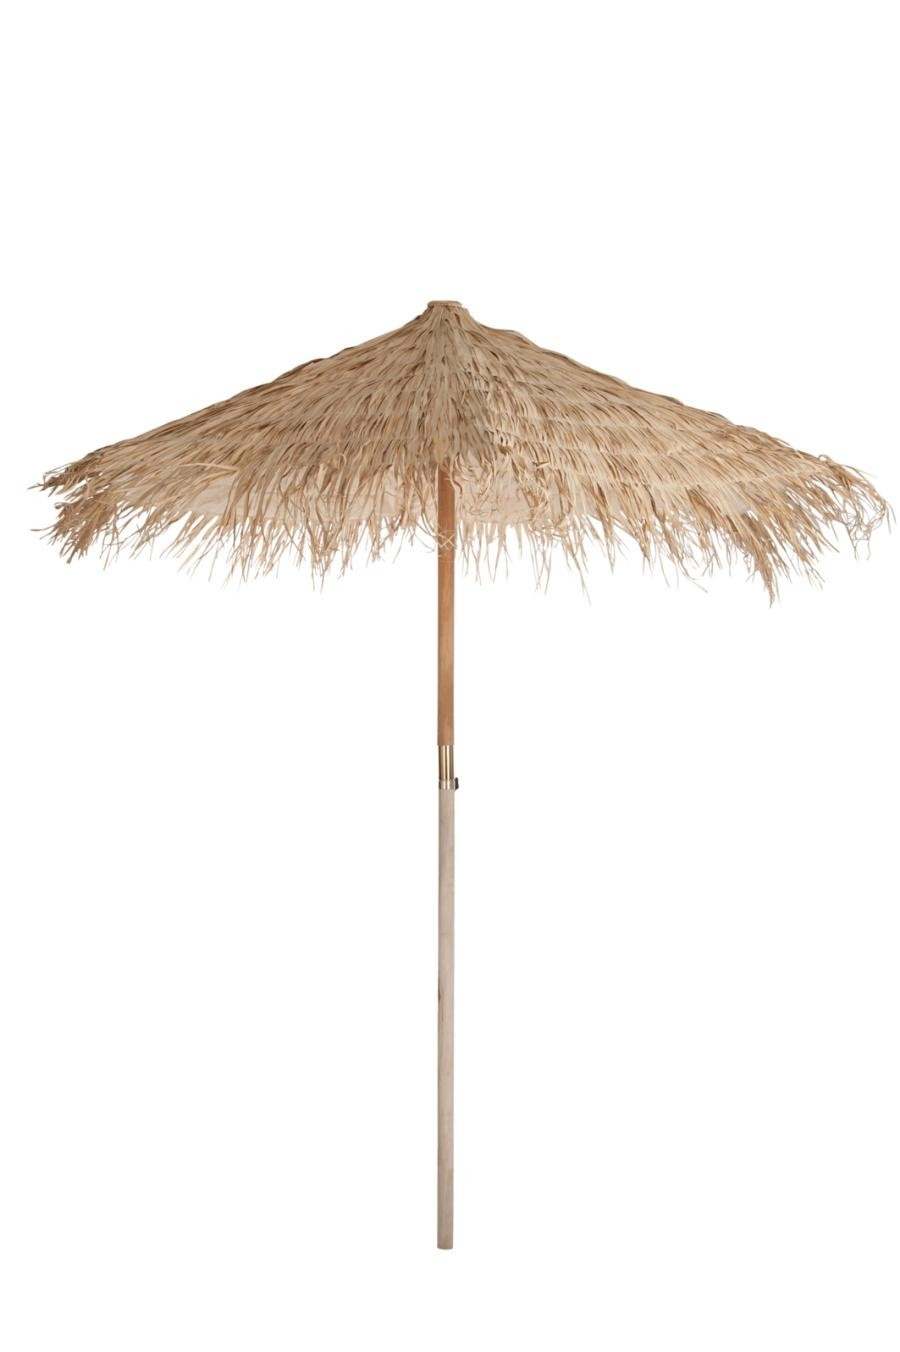 Grand Parasol Paille Naturel 250X250X270Cm J Line by Jolipa JL 71137